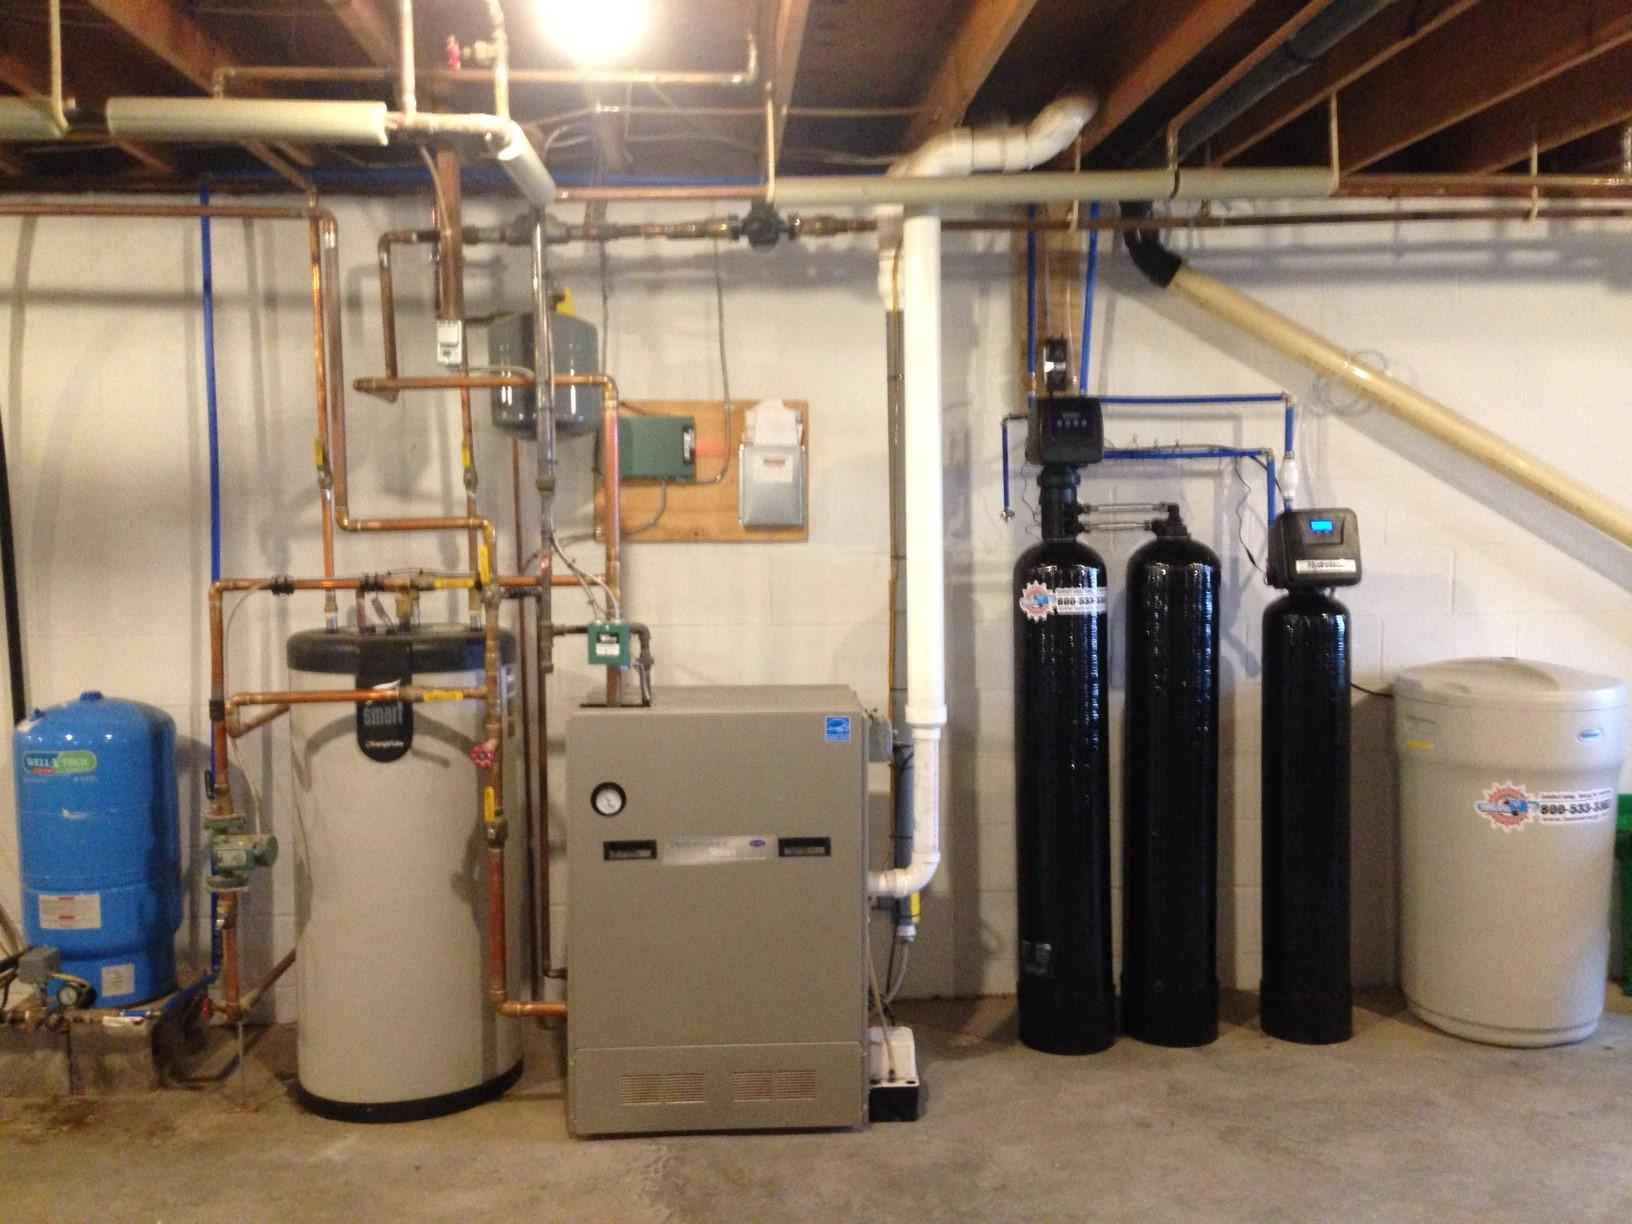 Water Conditioning System in Auburn, NY - After Photo